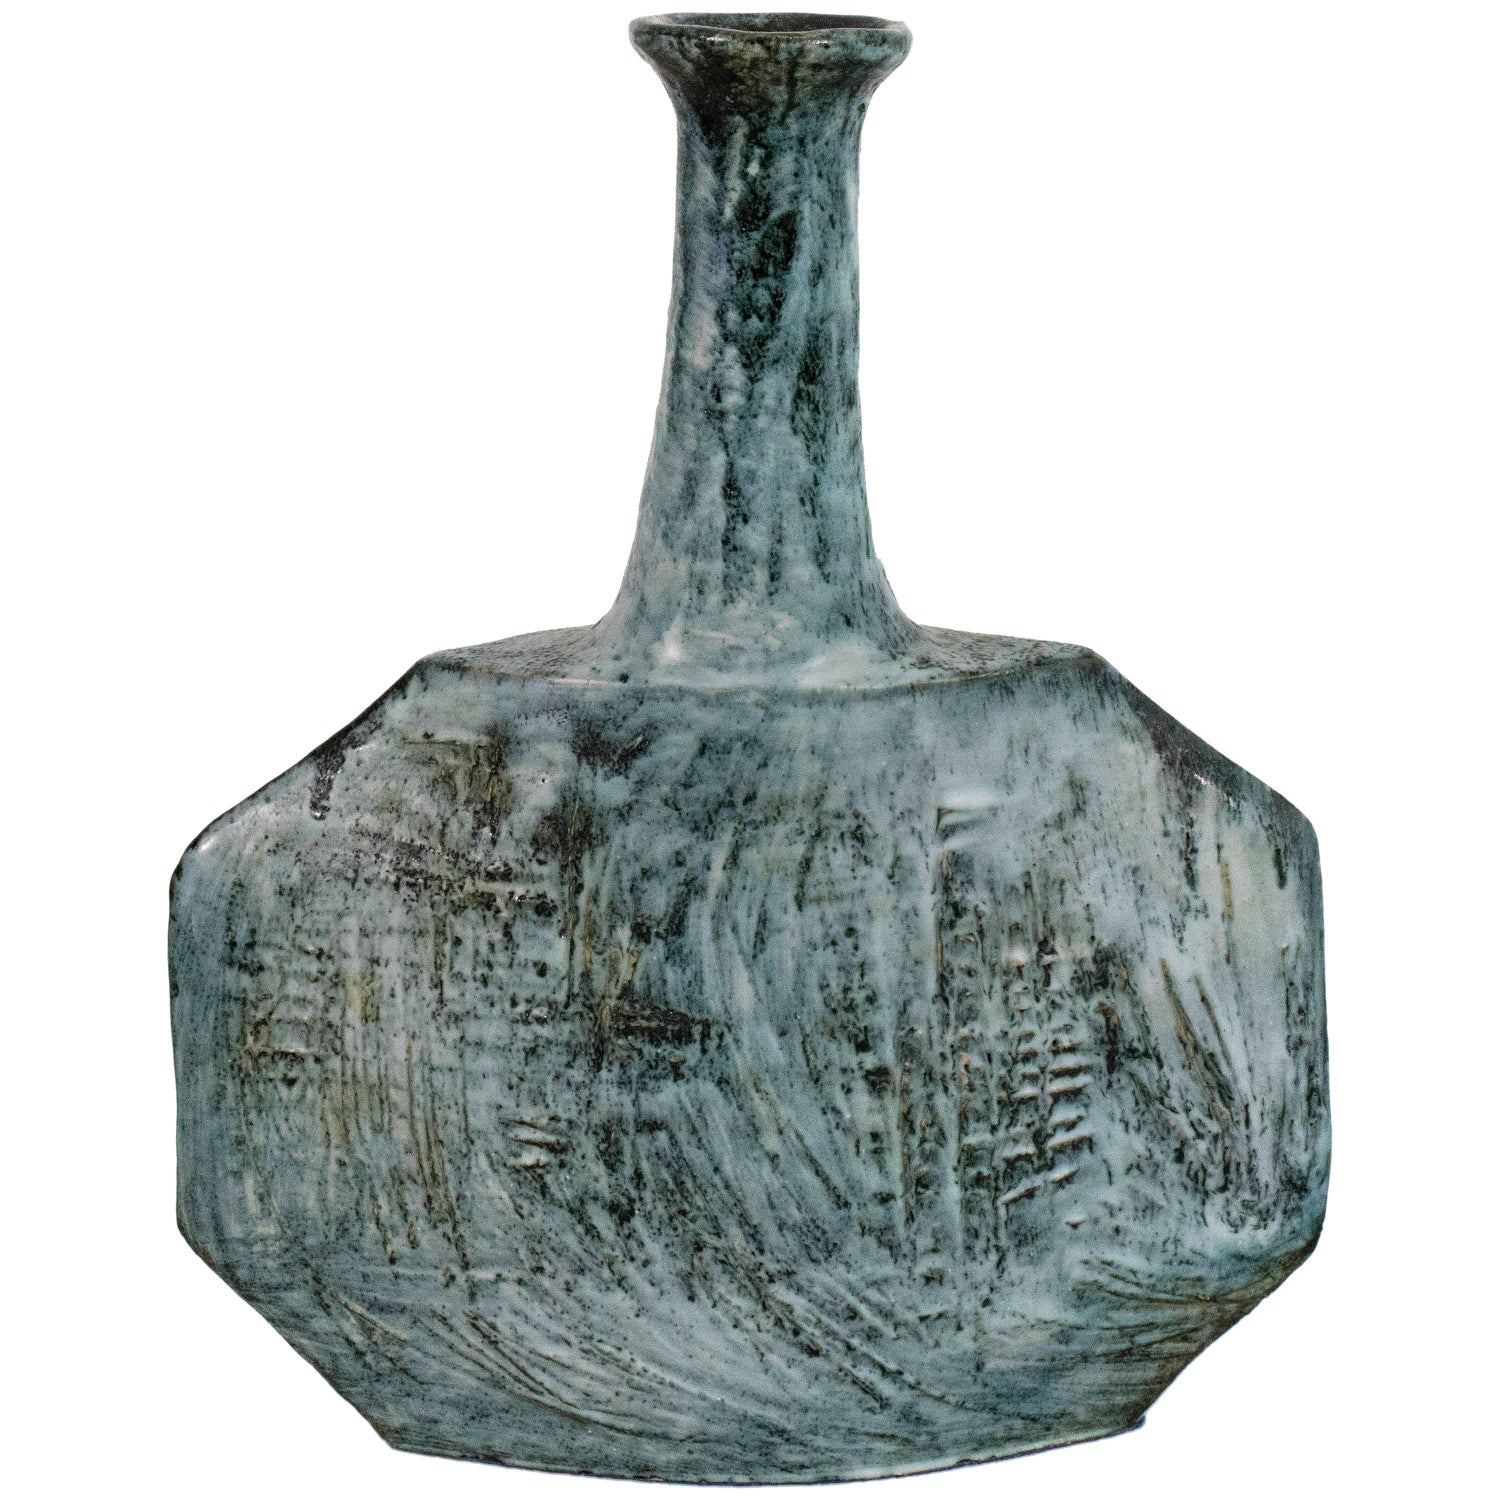 Antique vases and vessels for sale in spain 1stdibs ceramic vase by giuseppe rossicone circa 1960 italy reviewsmspy